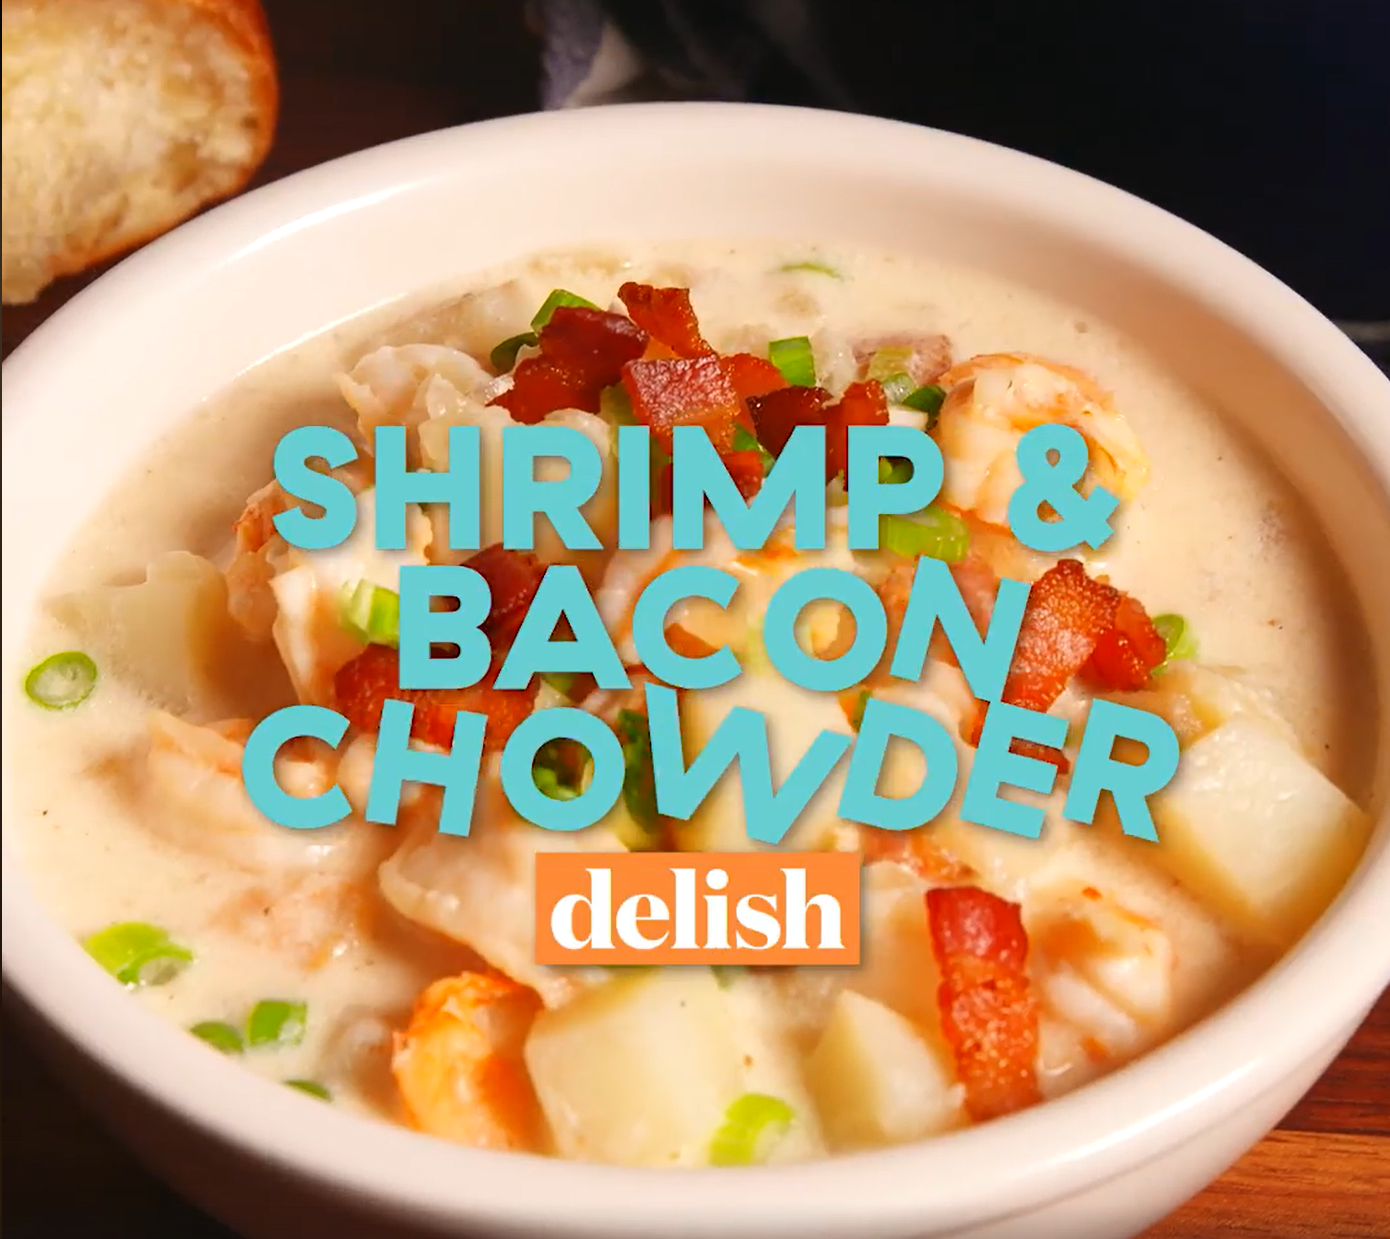 Shrimp 'n' Bacon Chowder